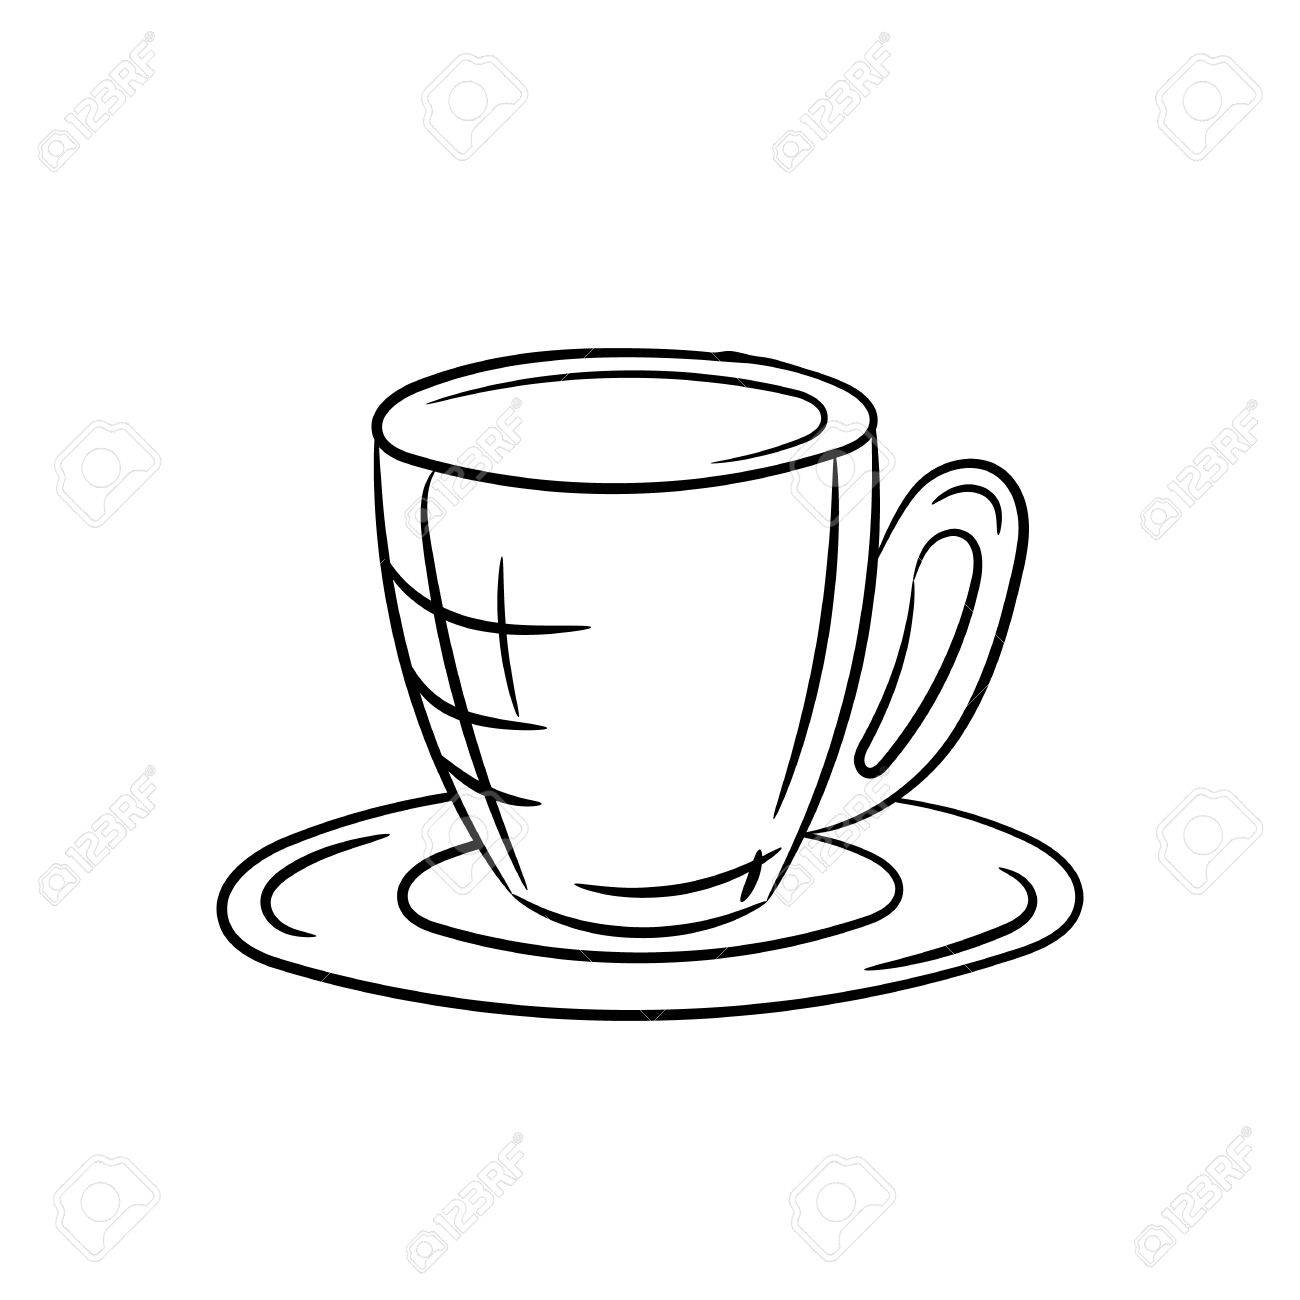 1300x1300 Hand Draw Cup And Saucer On A White Background Royalty Free